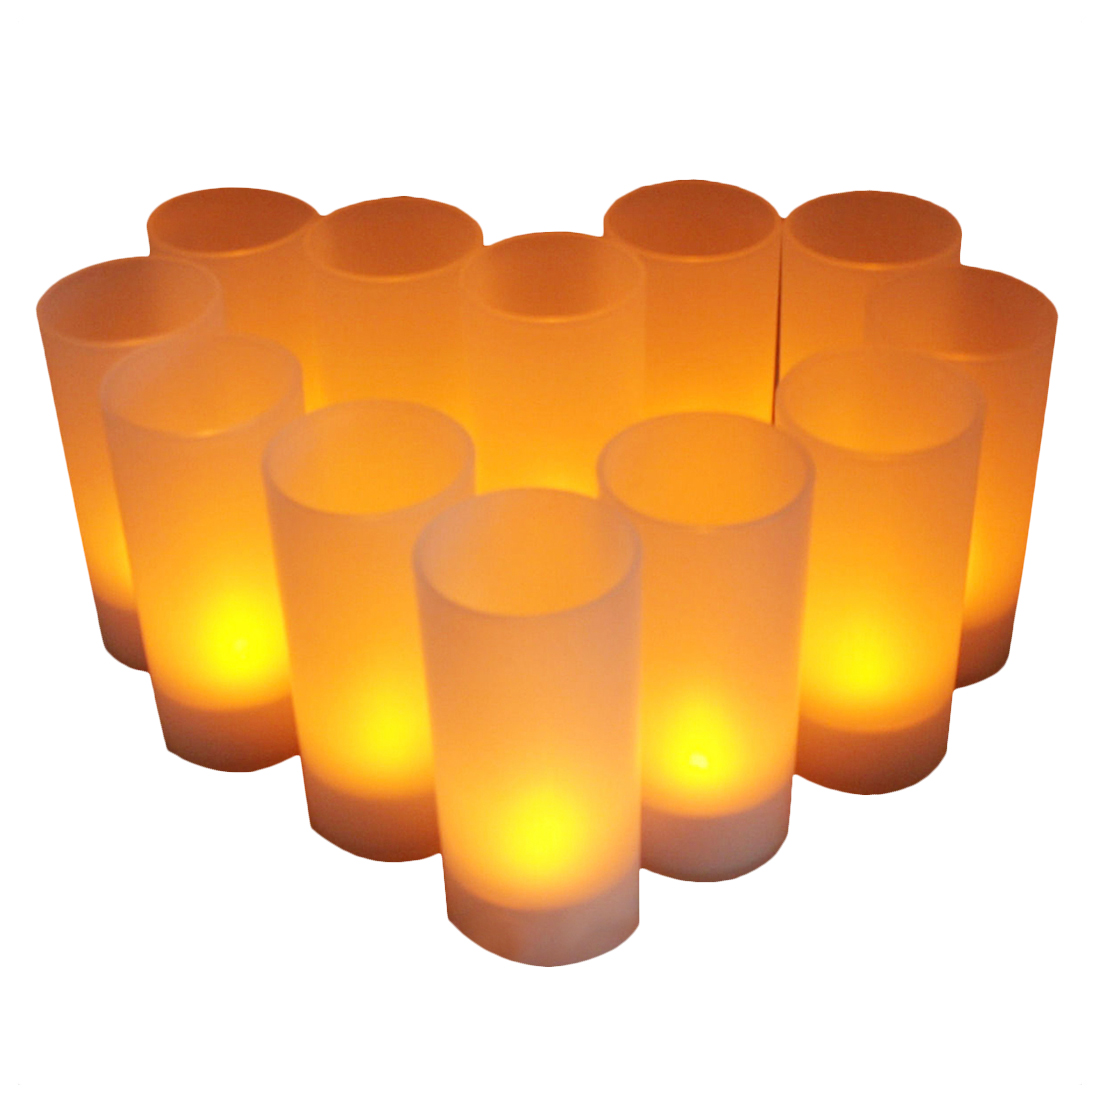 12pcs LED Tea Light Flameless Rechargeable LED Tea Light Flickering Amber Tealights Candles US plug rechargeable battery12pcs LED Tea Light Flameless Rechargeable LED Tea Light Flickering Amber Tealights Candles US plug rechargeable battery